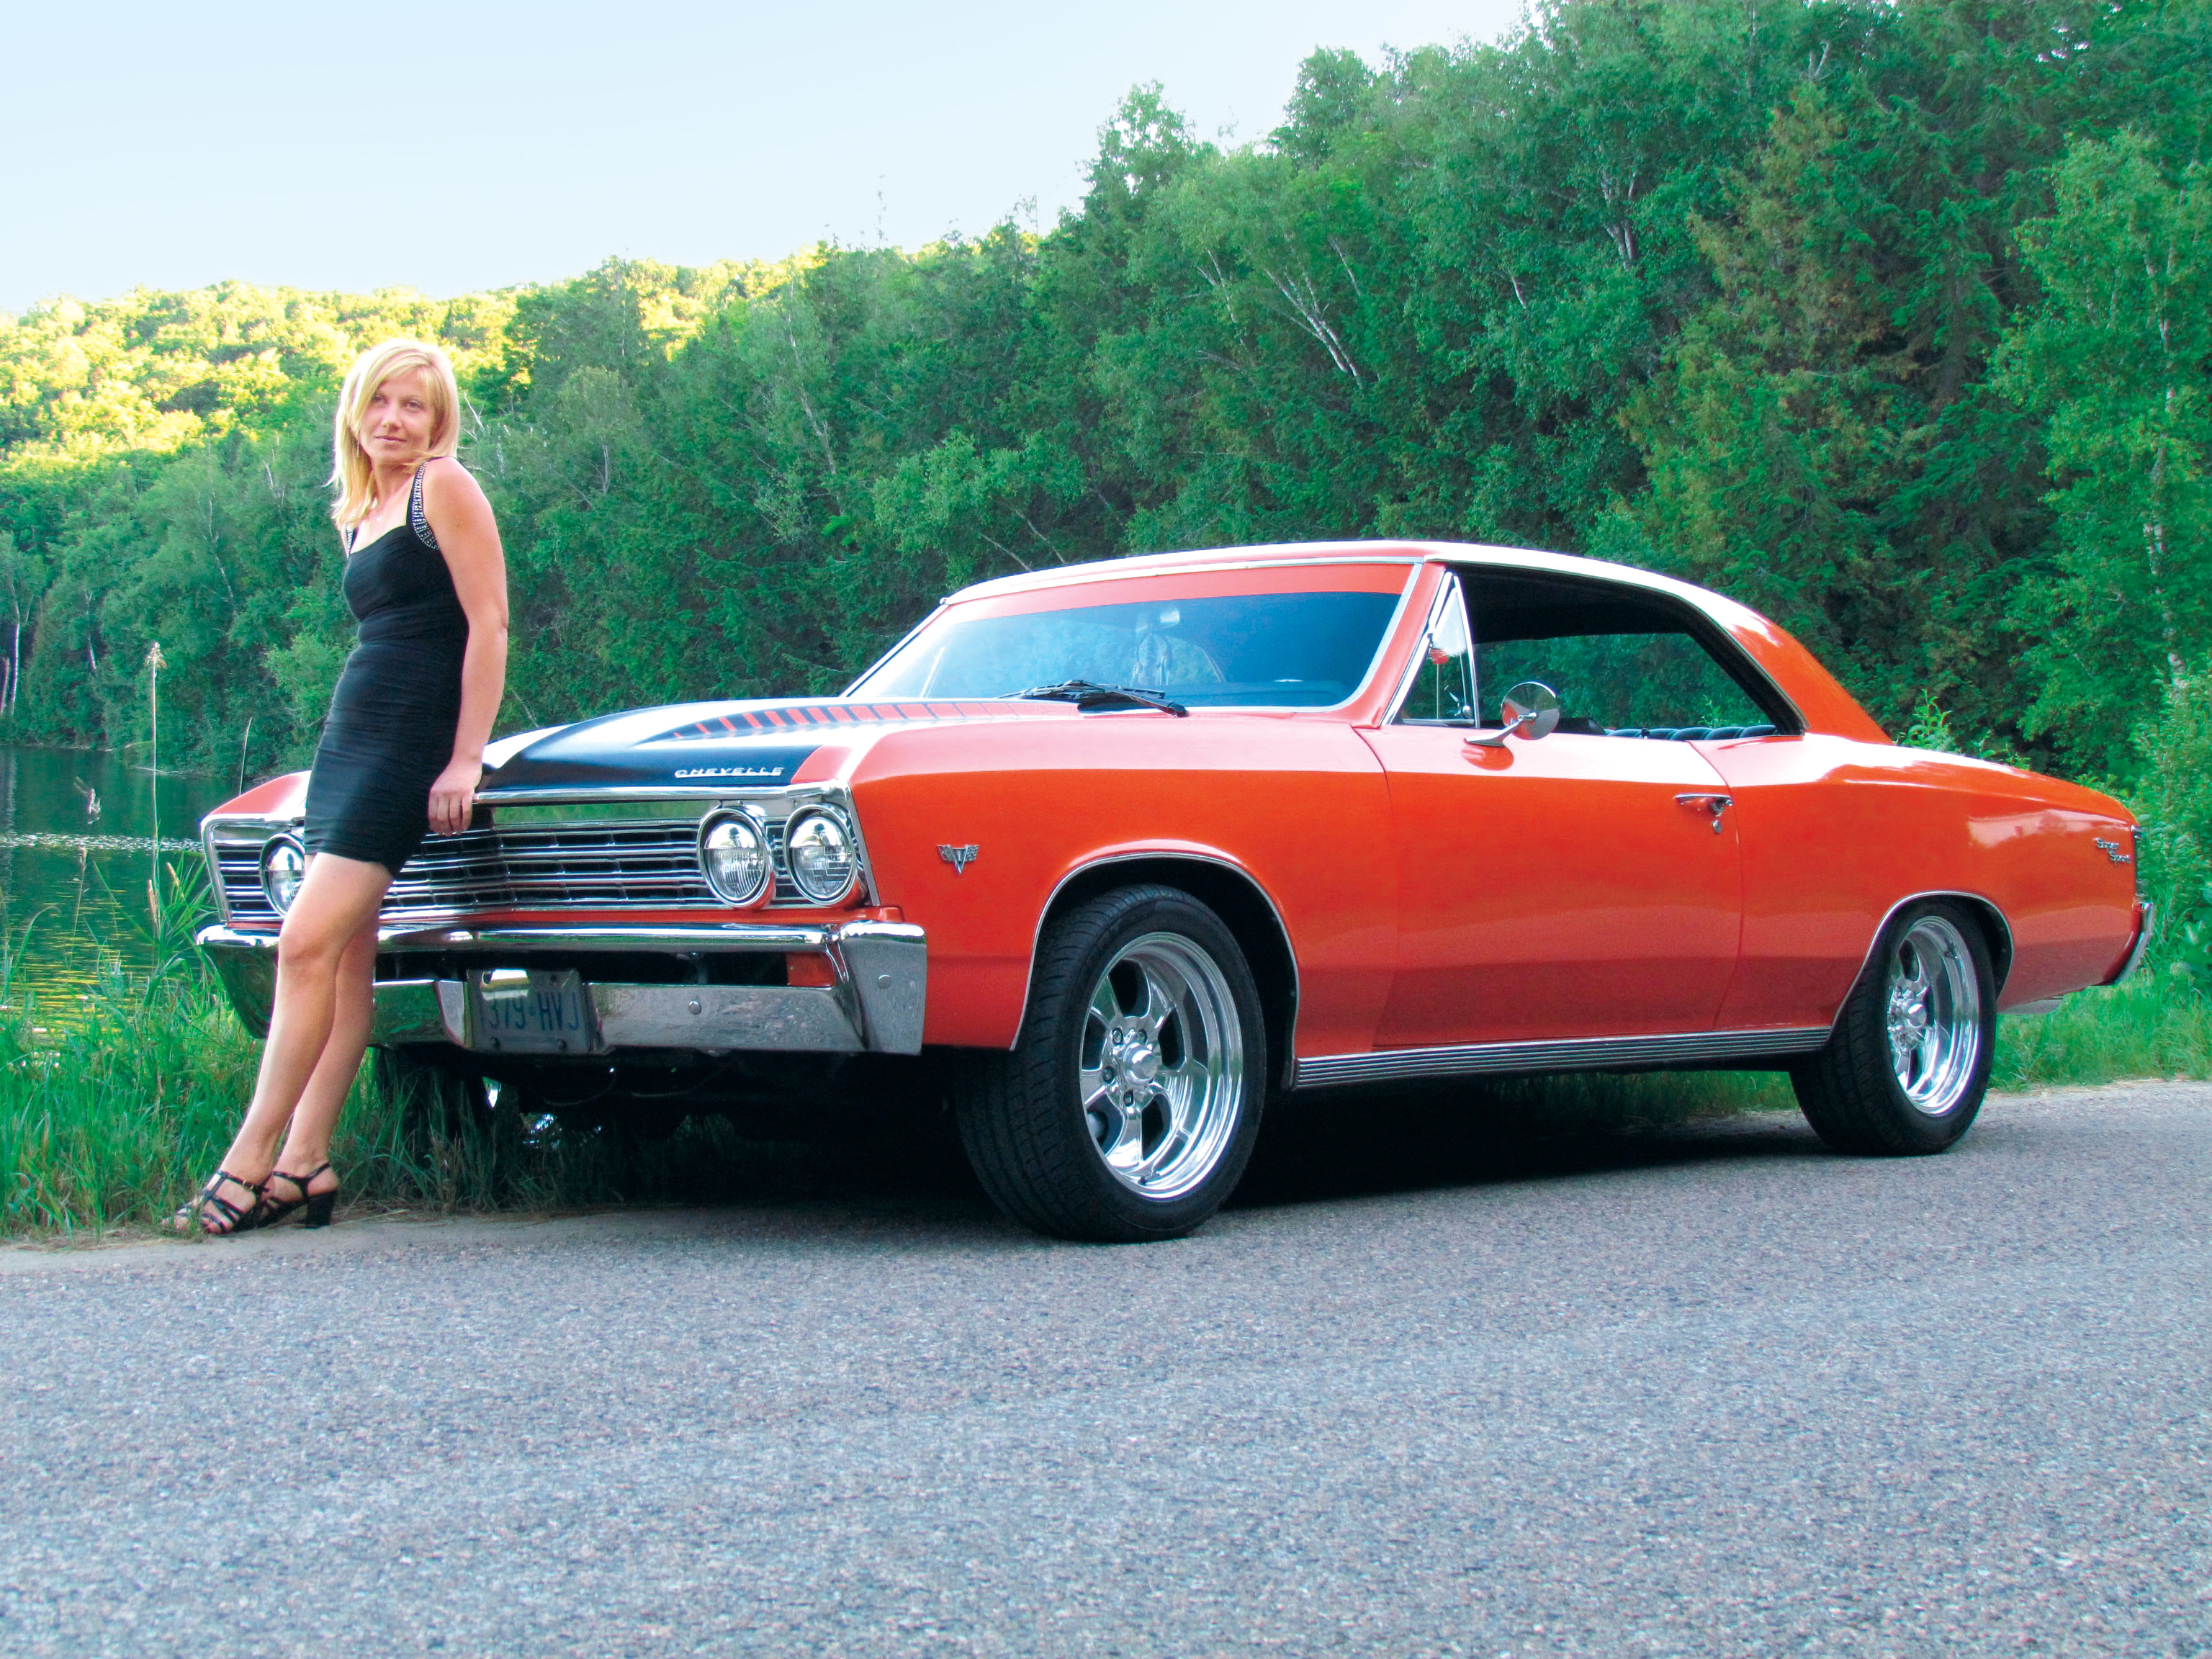 chevrolet malibu hot rod -#main